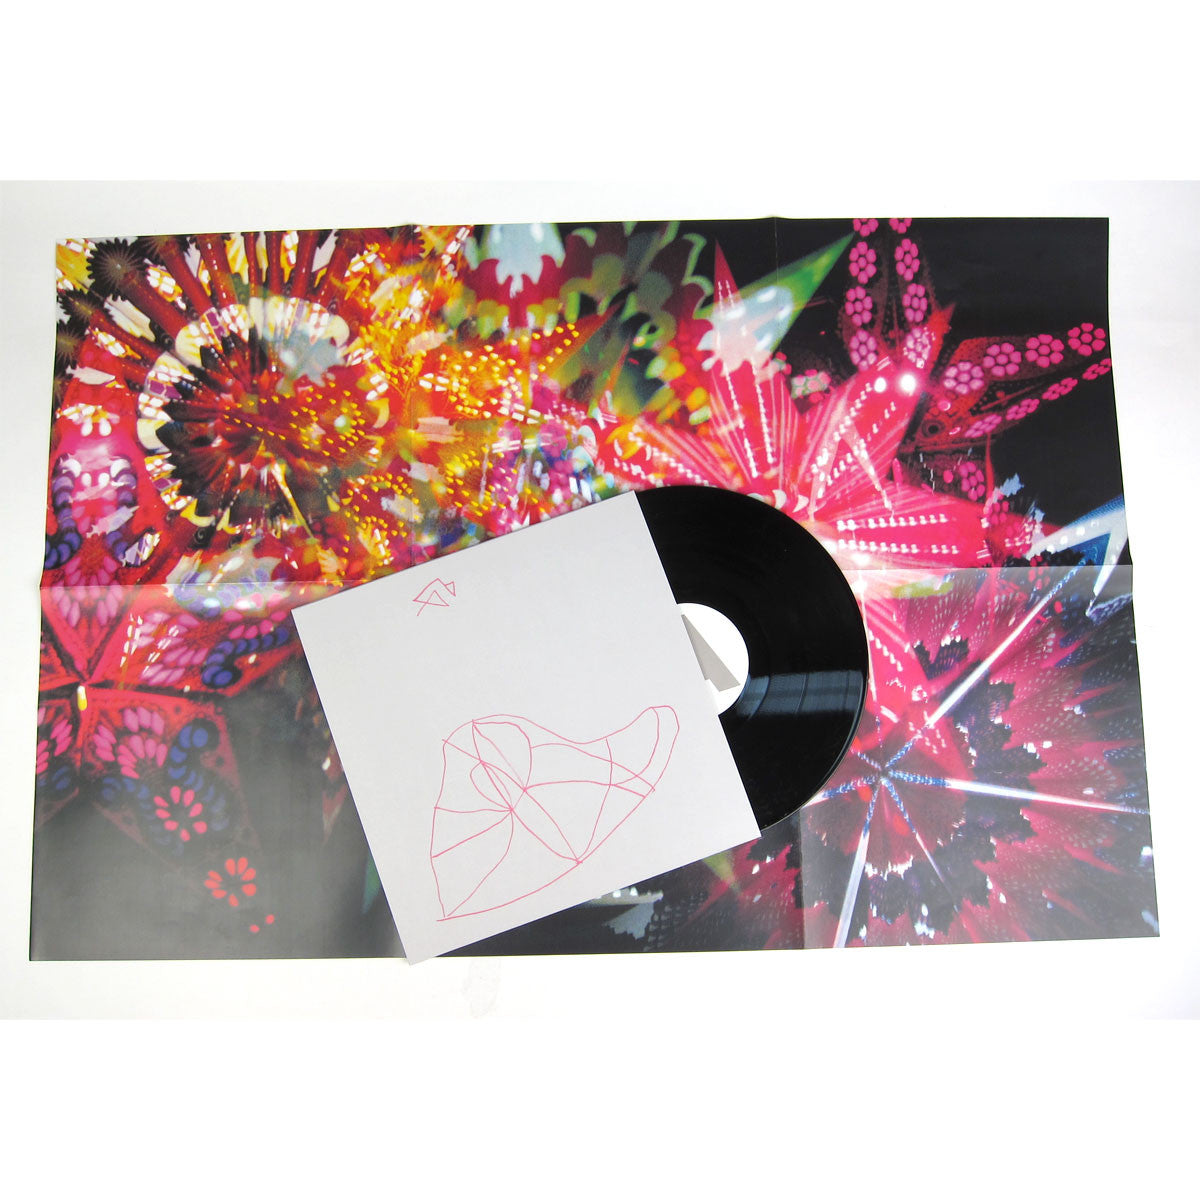 Caribou Vibration Ensemble: CVE Live 2011 (Four Tet, James Holden) Vinyl LP detail